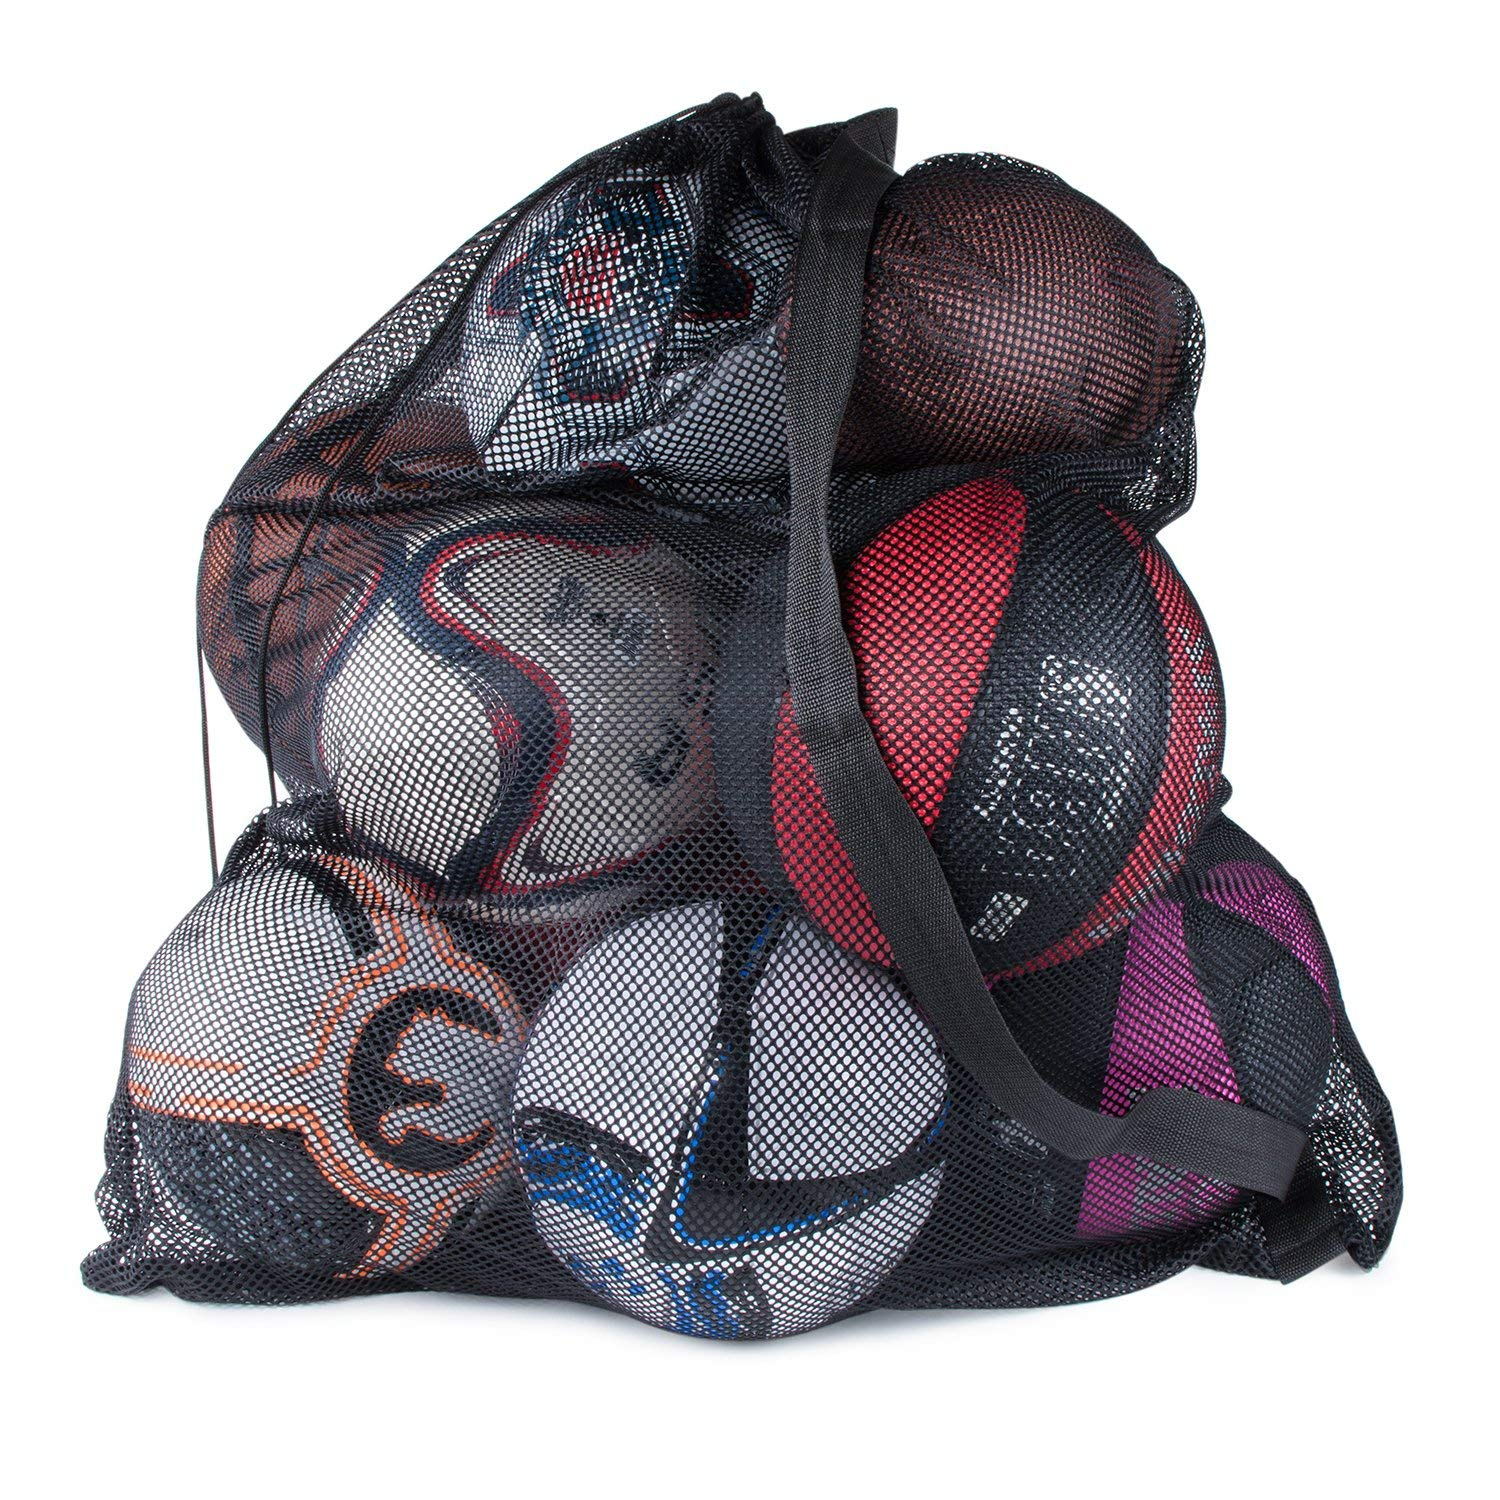 Sports Ball Bag Drawstring Mesh - Bowling Ball Bag